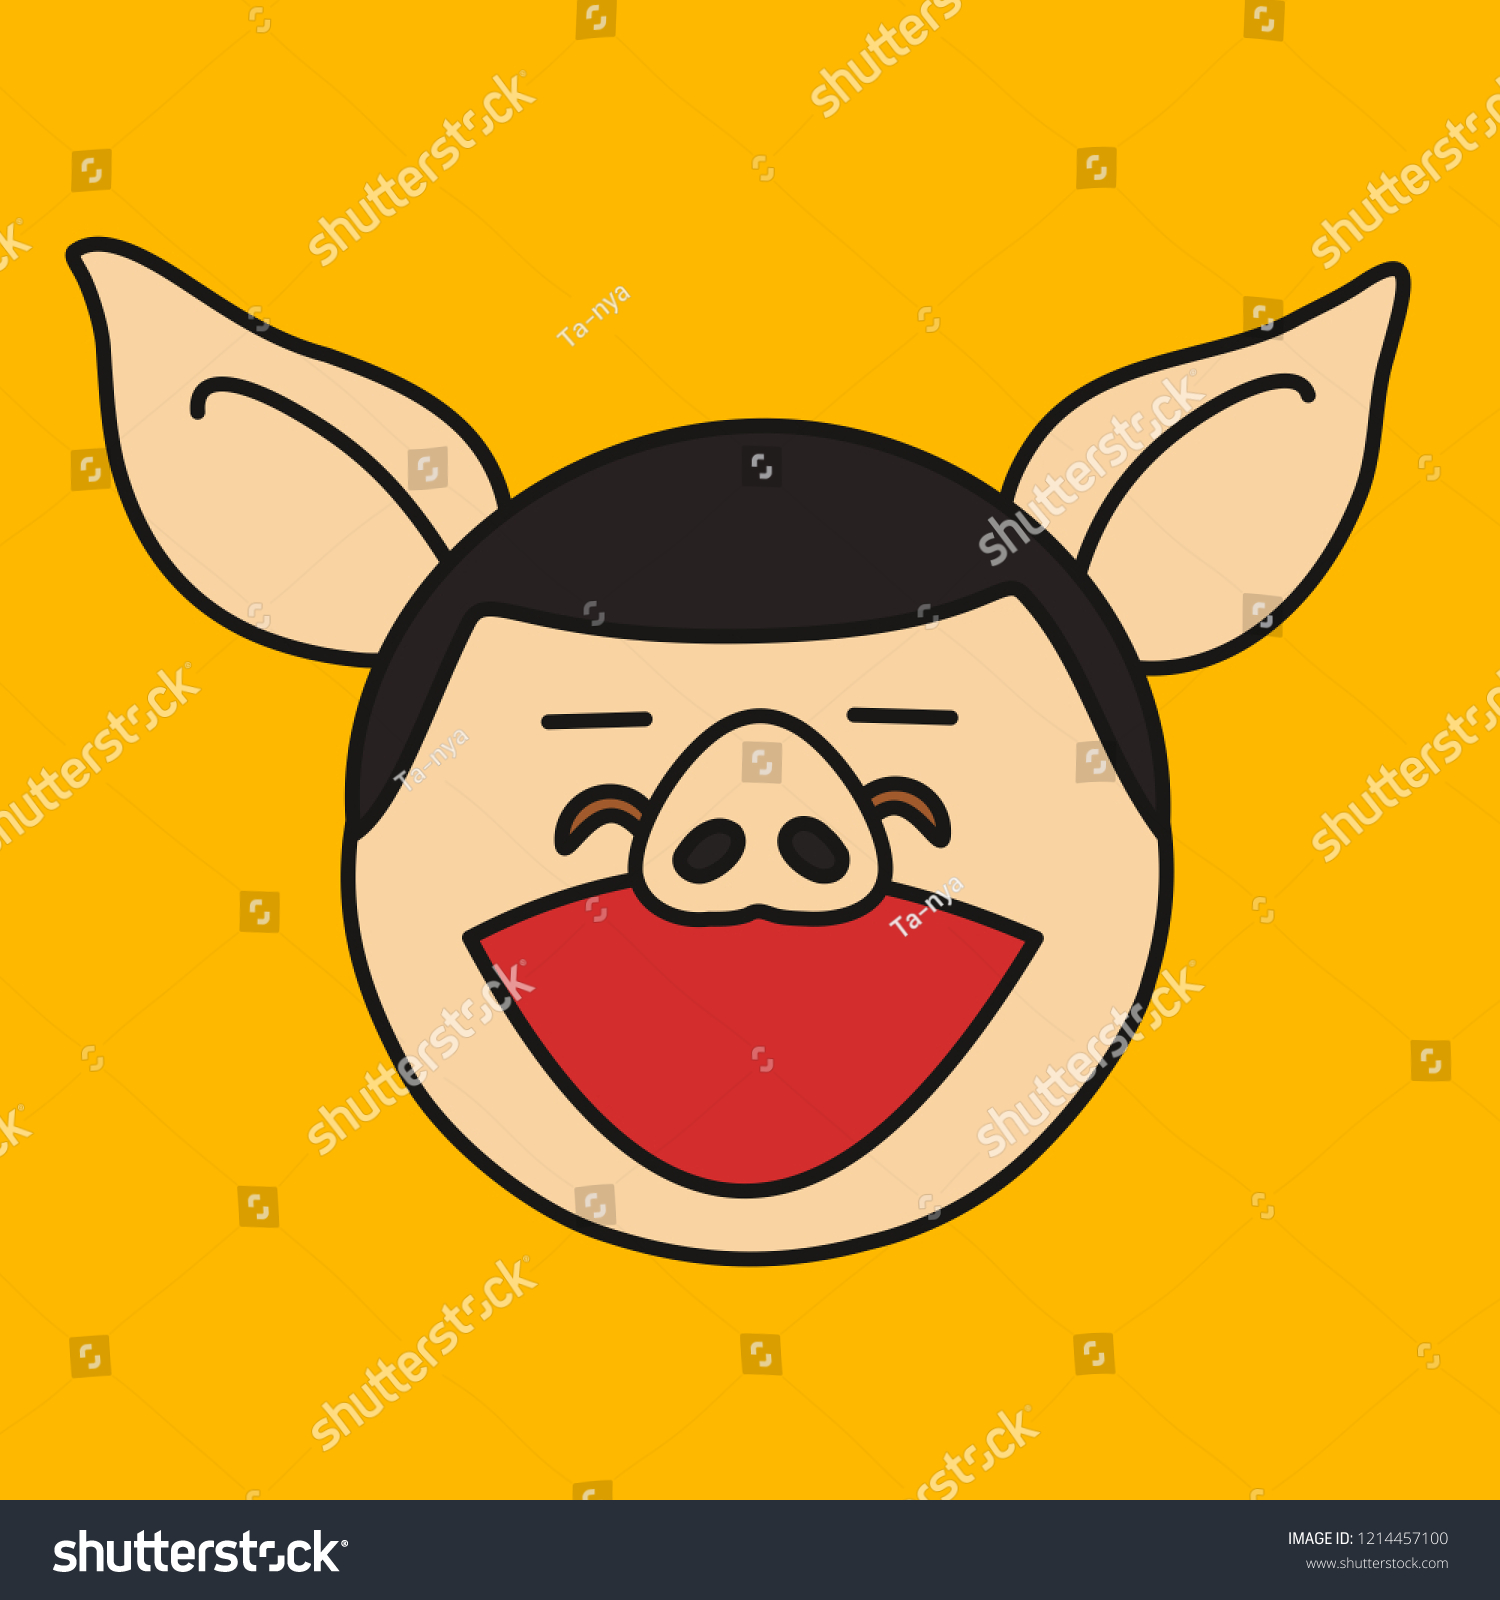 Emoji Laughing Out Loud Pig Face Stock Vector (Royalty Free